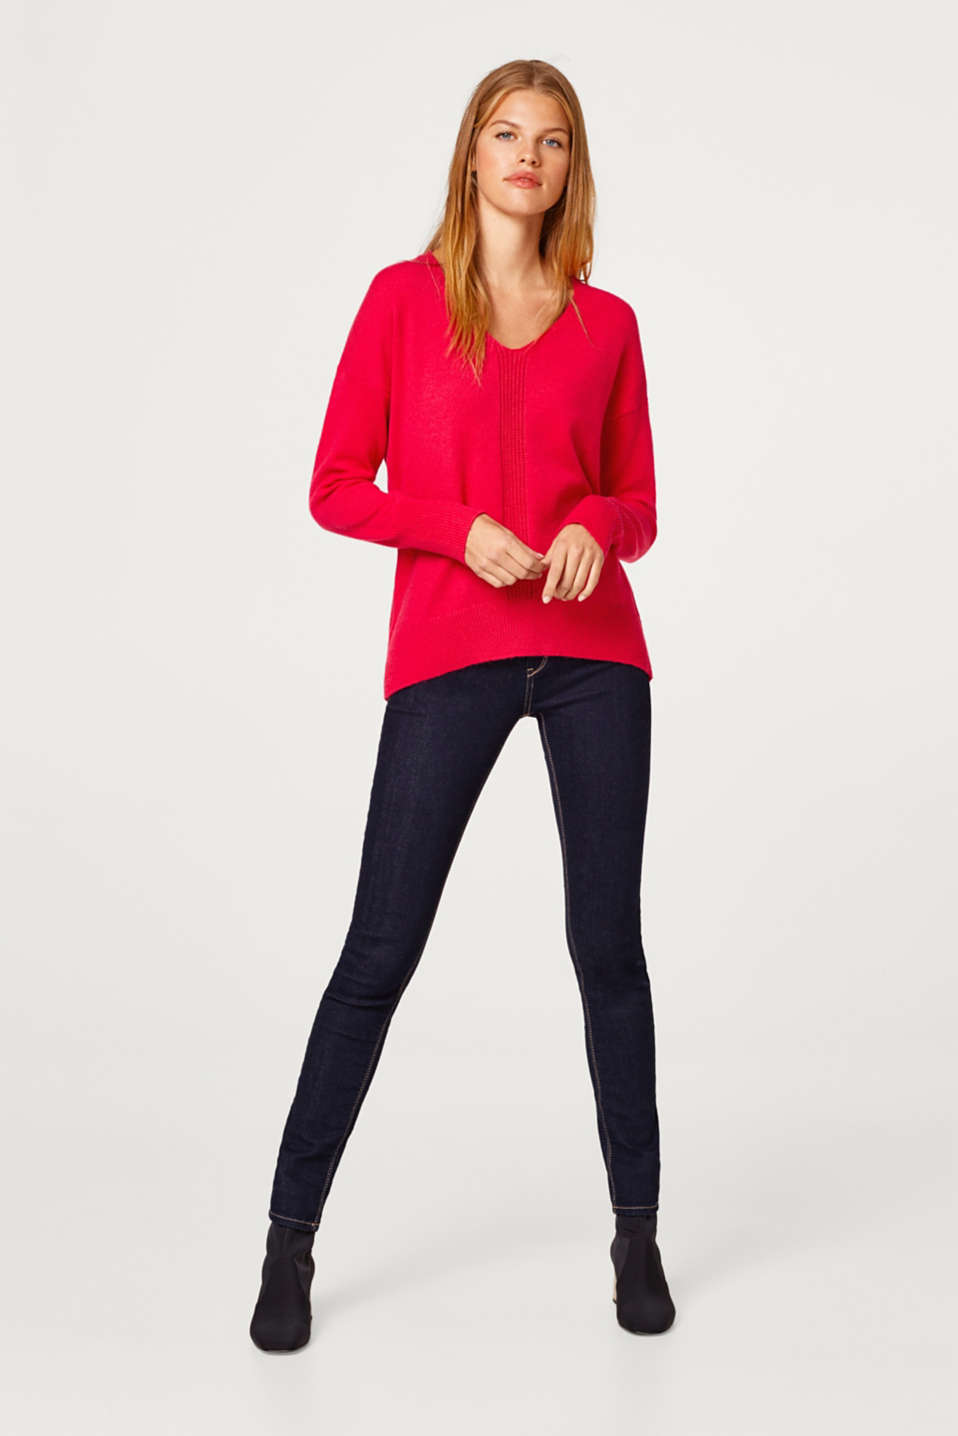 Wool blend: jumper with a back button placket